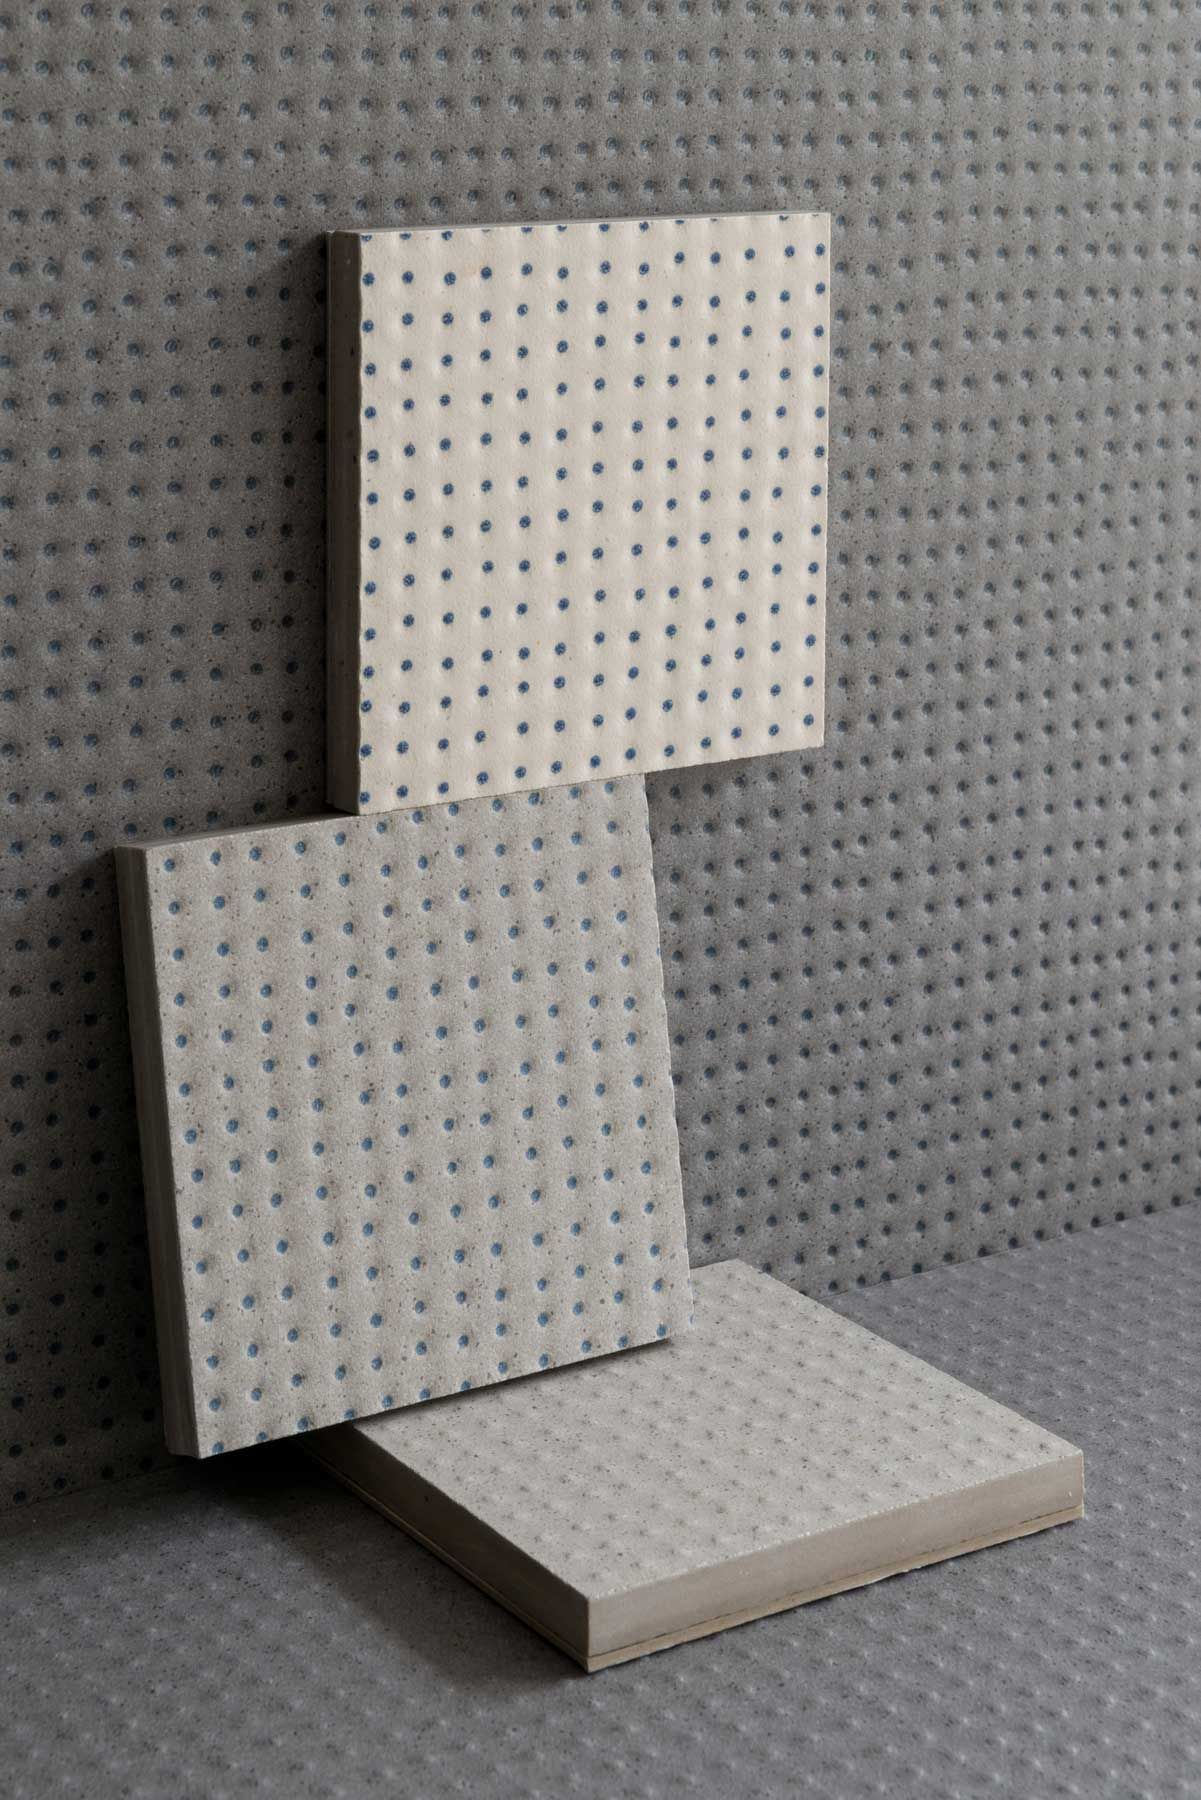 konstantin grcic and the bouroullecs for mutina materiaux